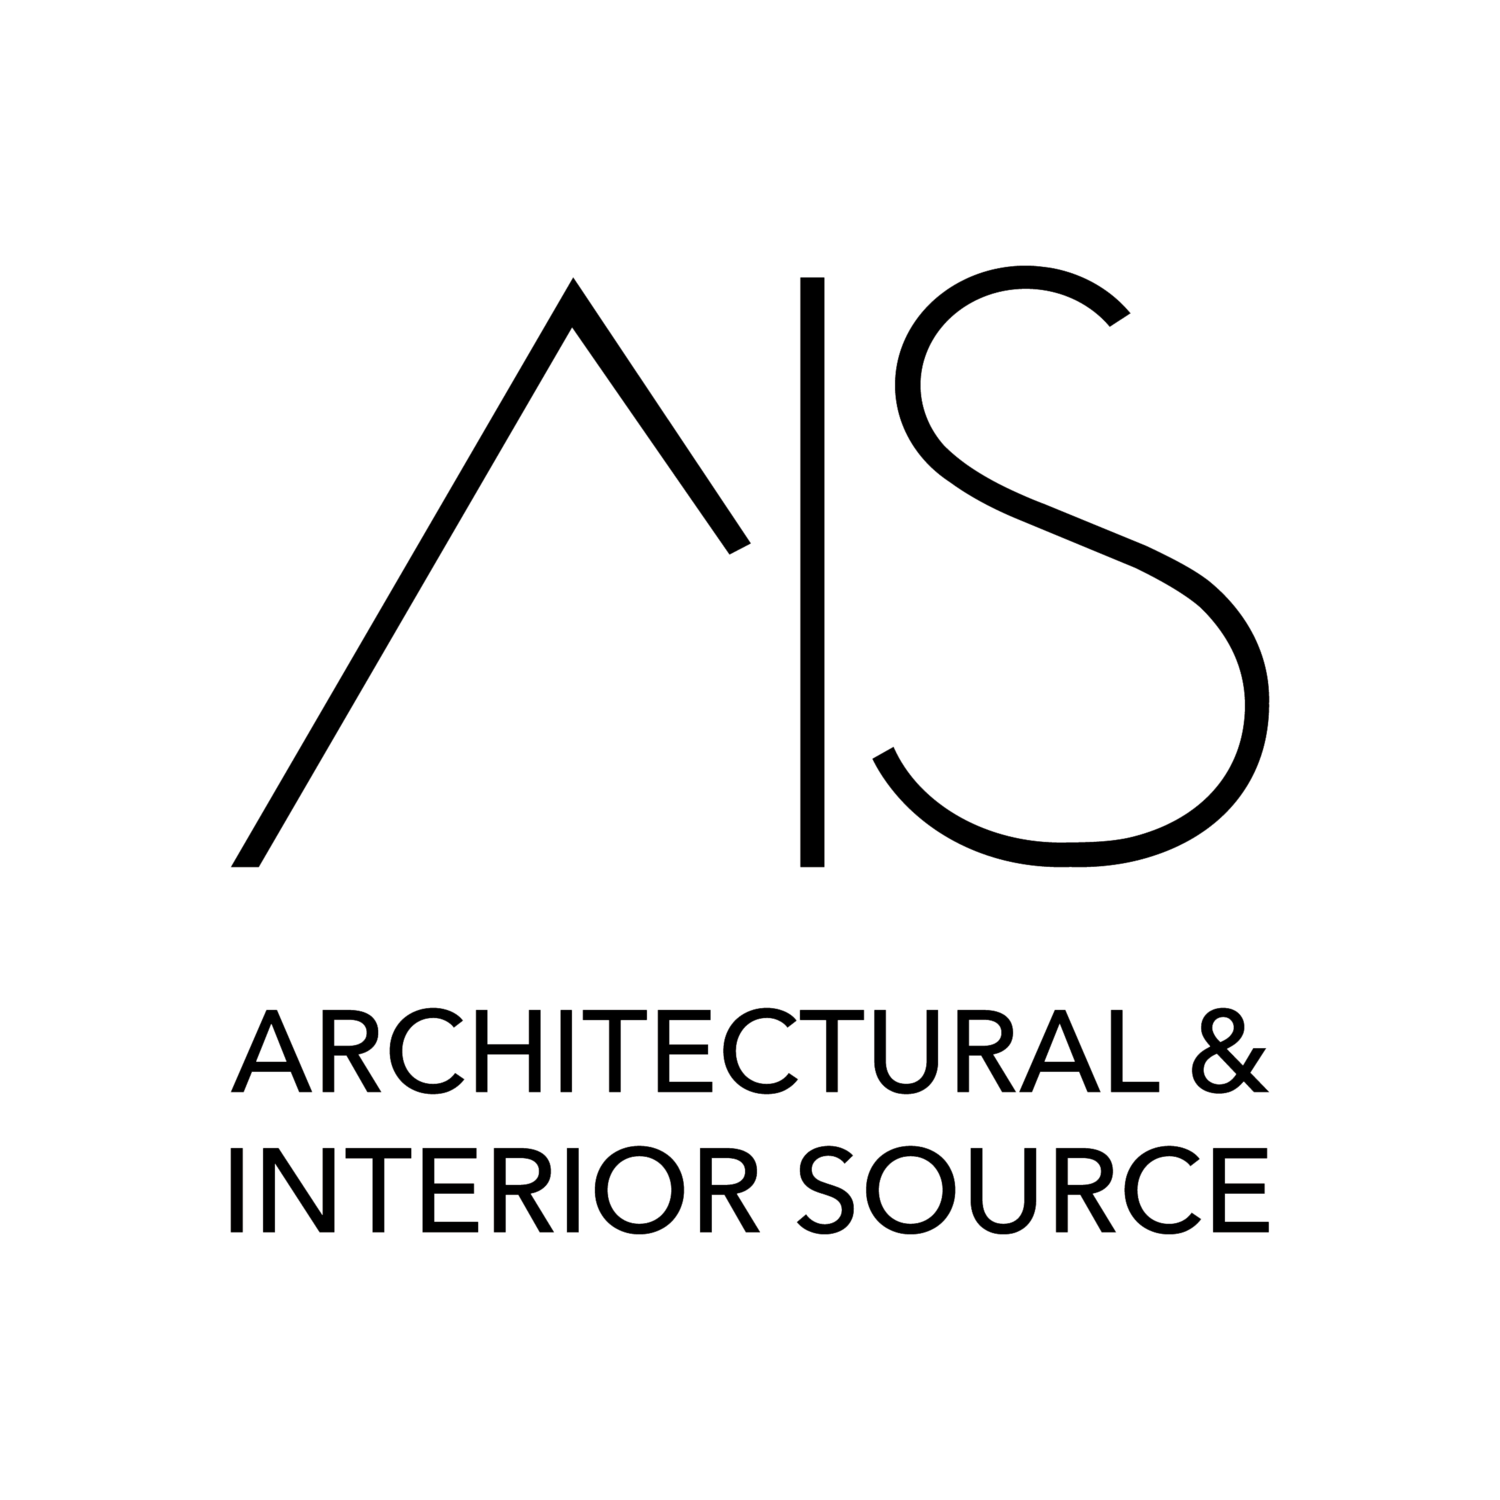 Architectural & Interior Source